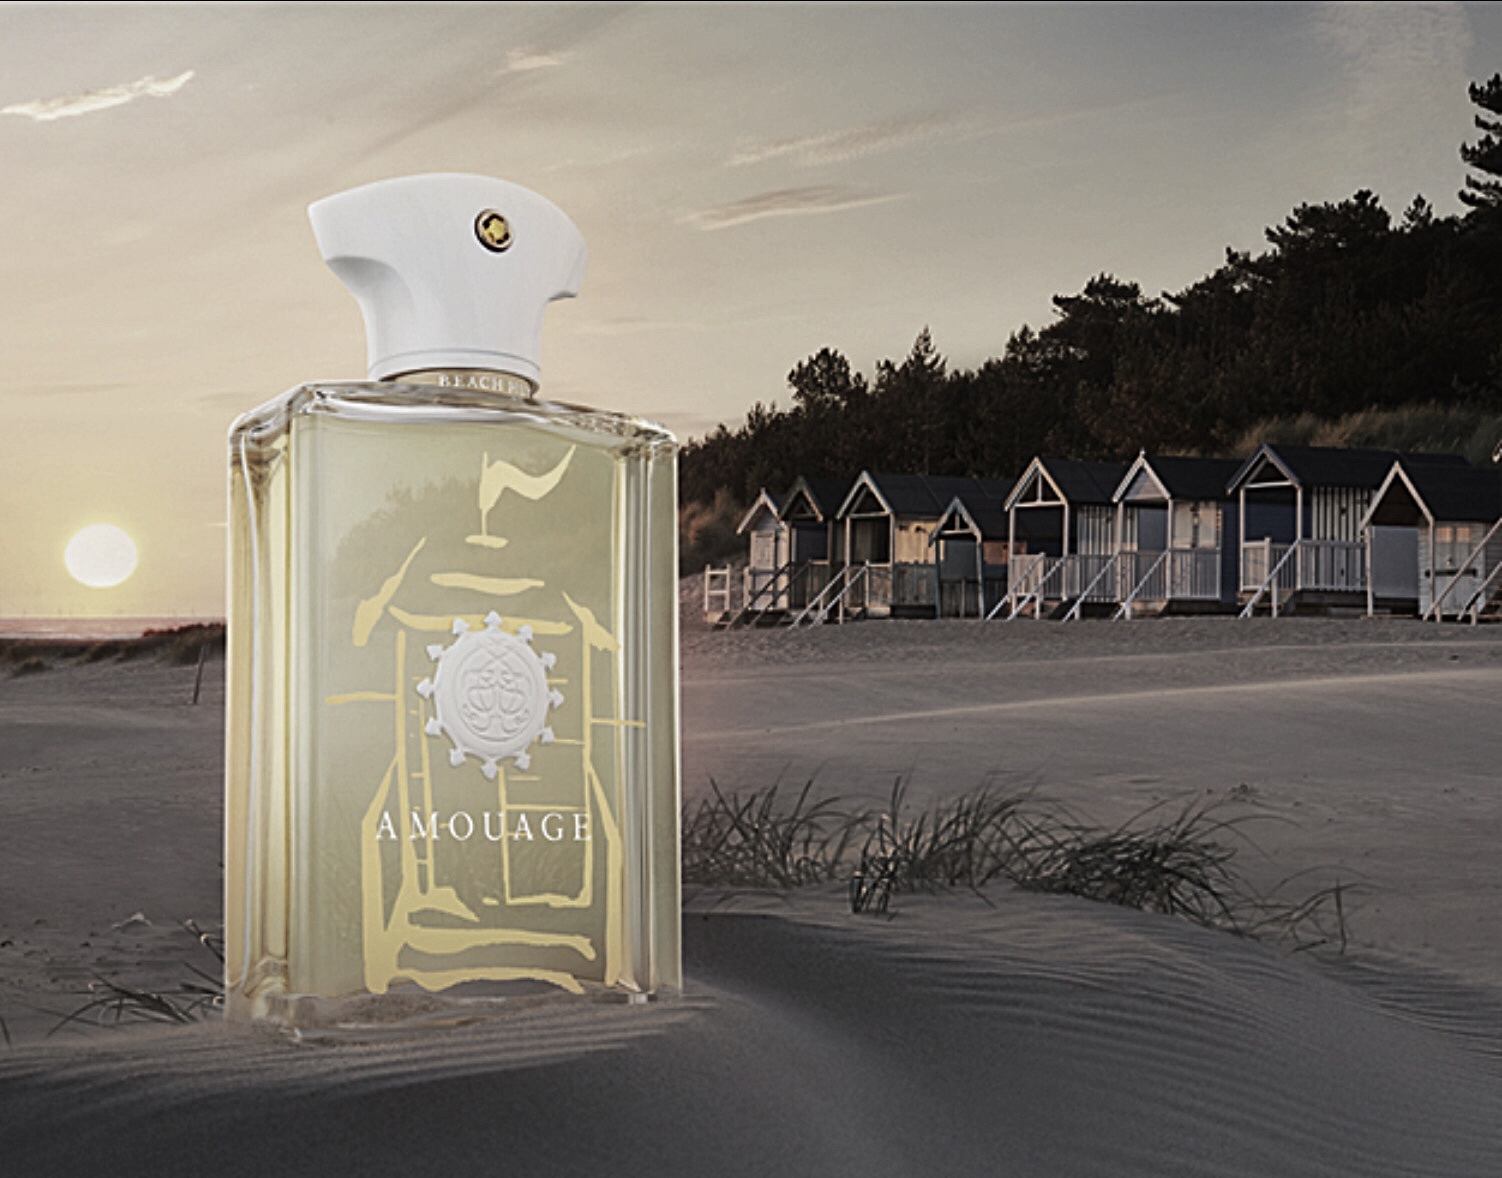 beach hut man amouage 1